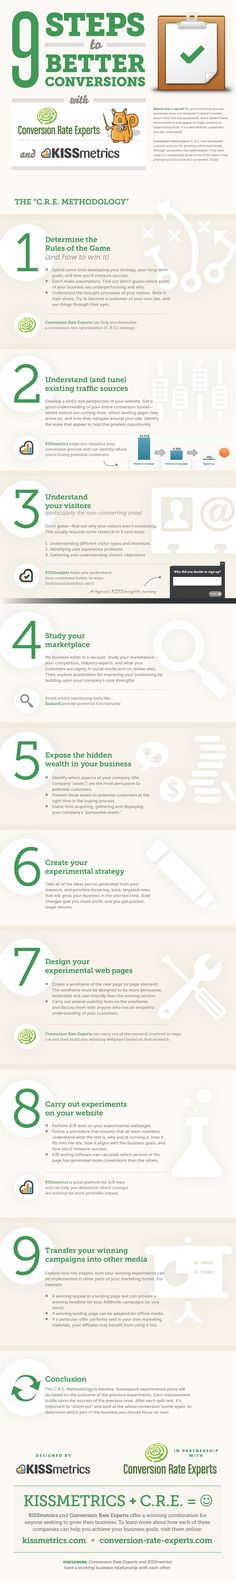 9 Steps to Better Conversions